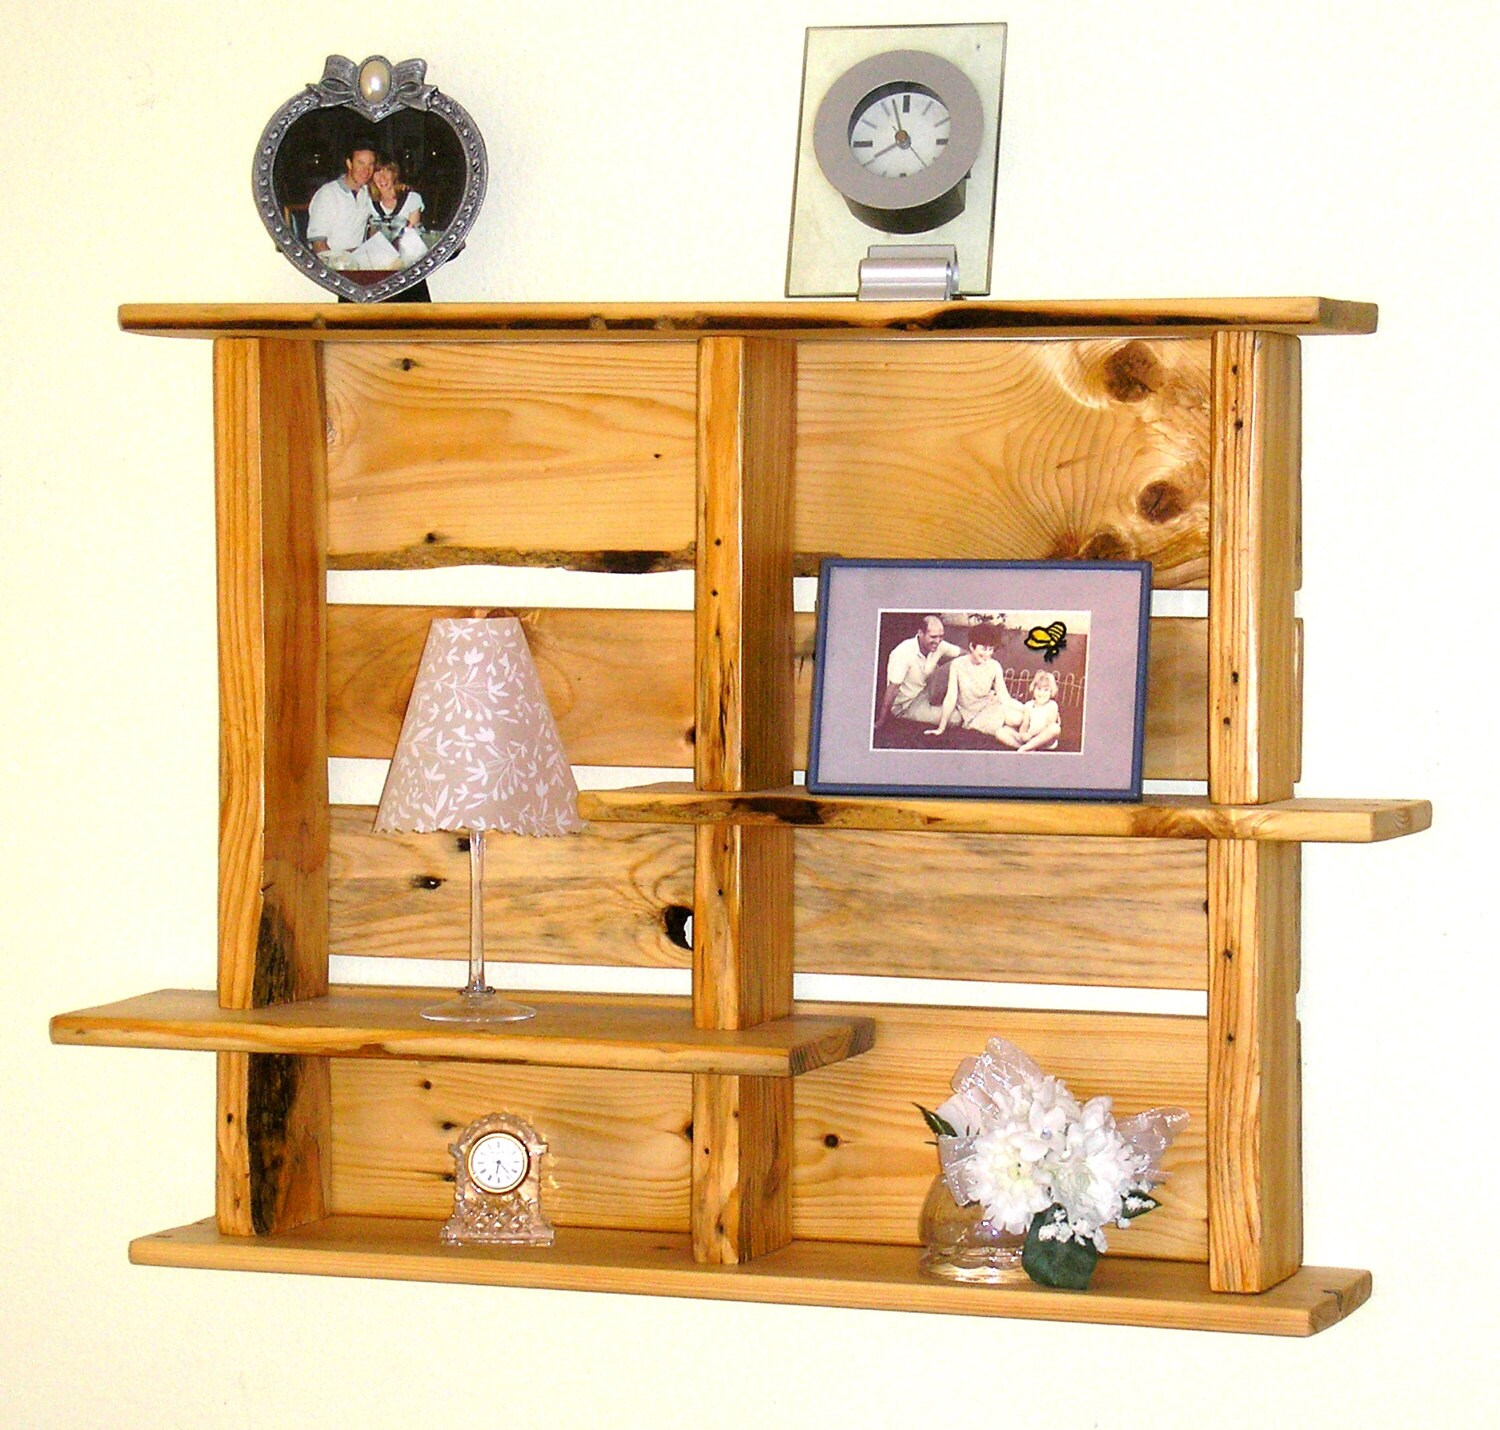 Wall Art With Pallets: Repurposed Pallet Wood Wall Shelf Pallet Wood Wall Decor